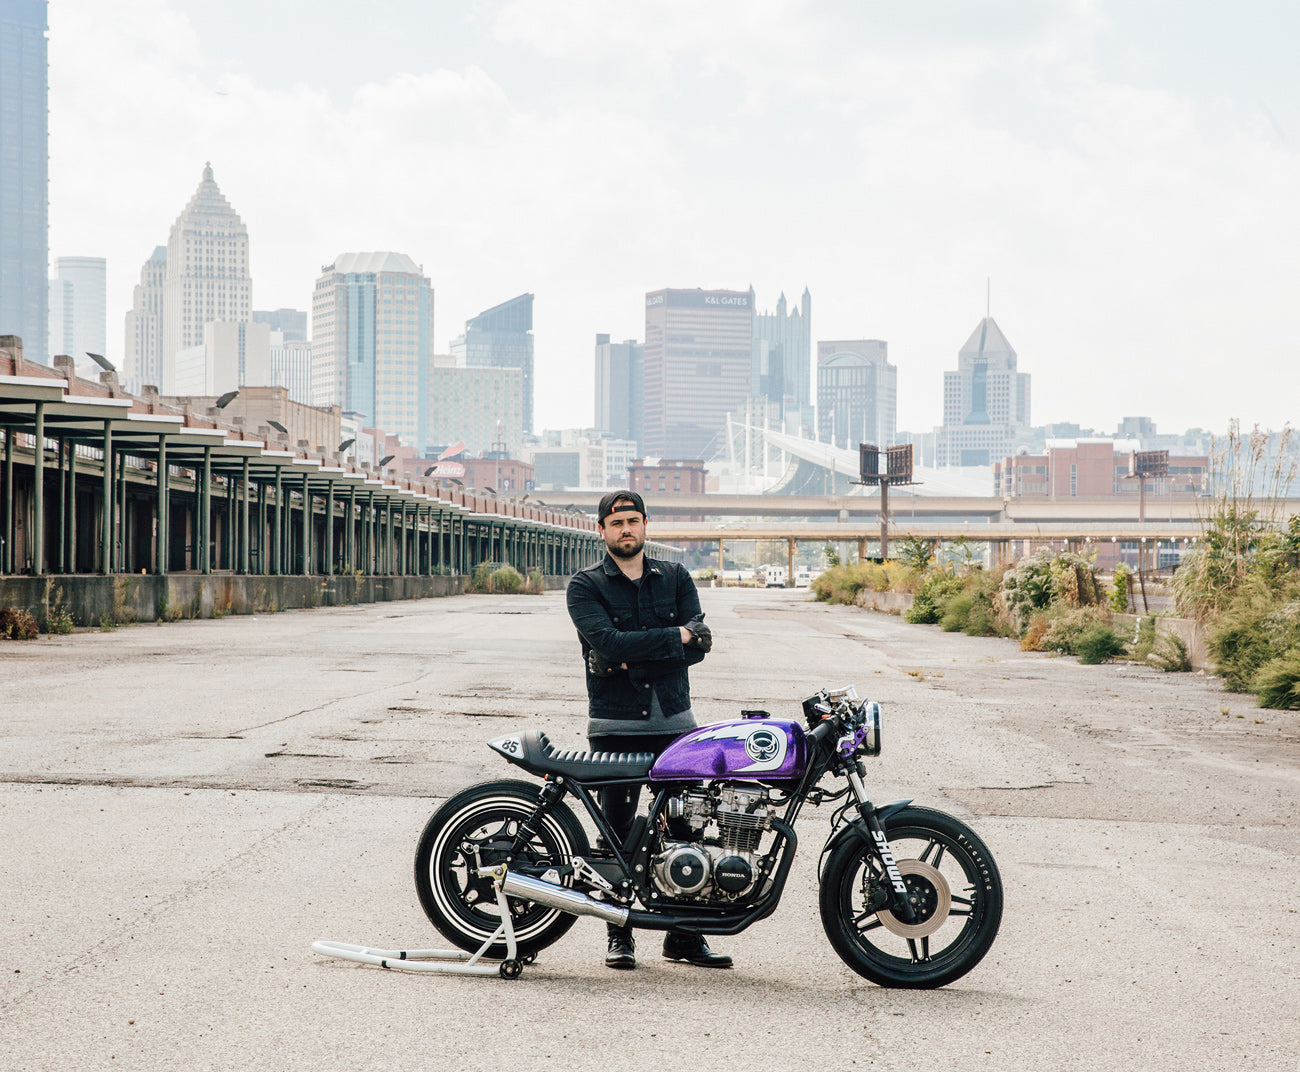 Honda CB650 Cafe Racer Custom Motorcycle Pittsburgh